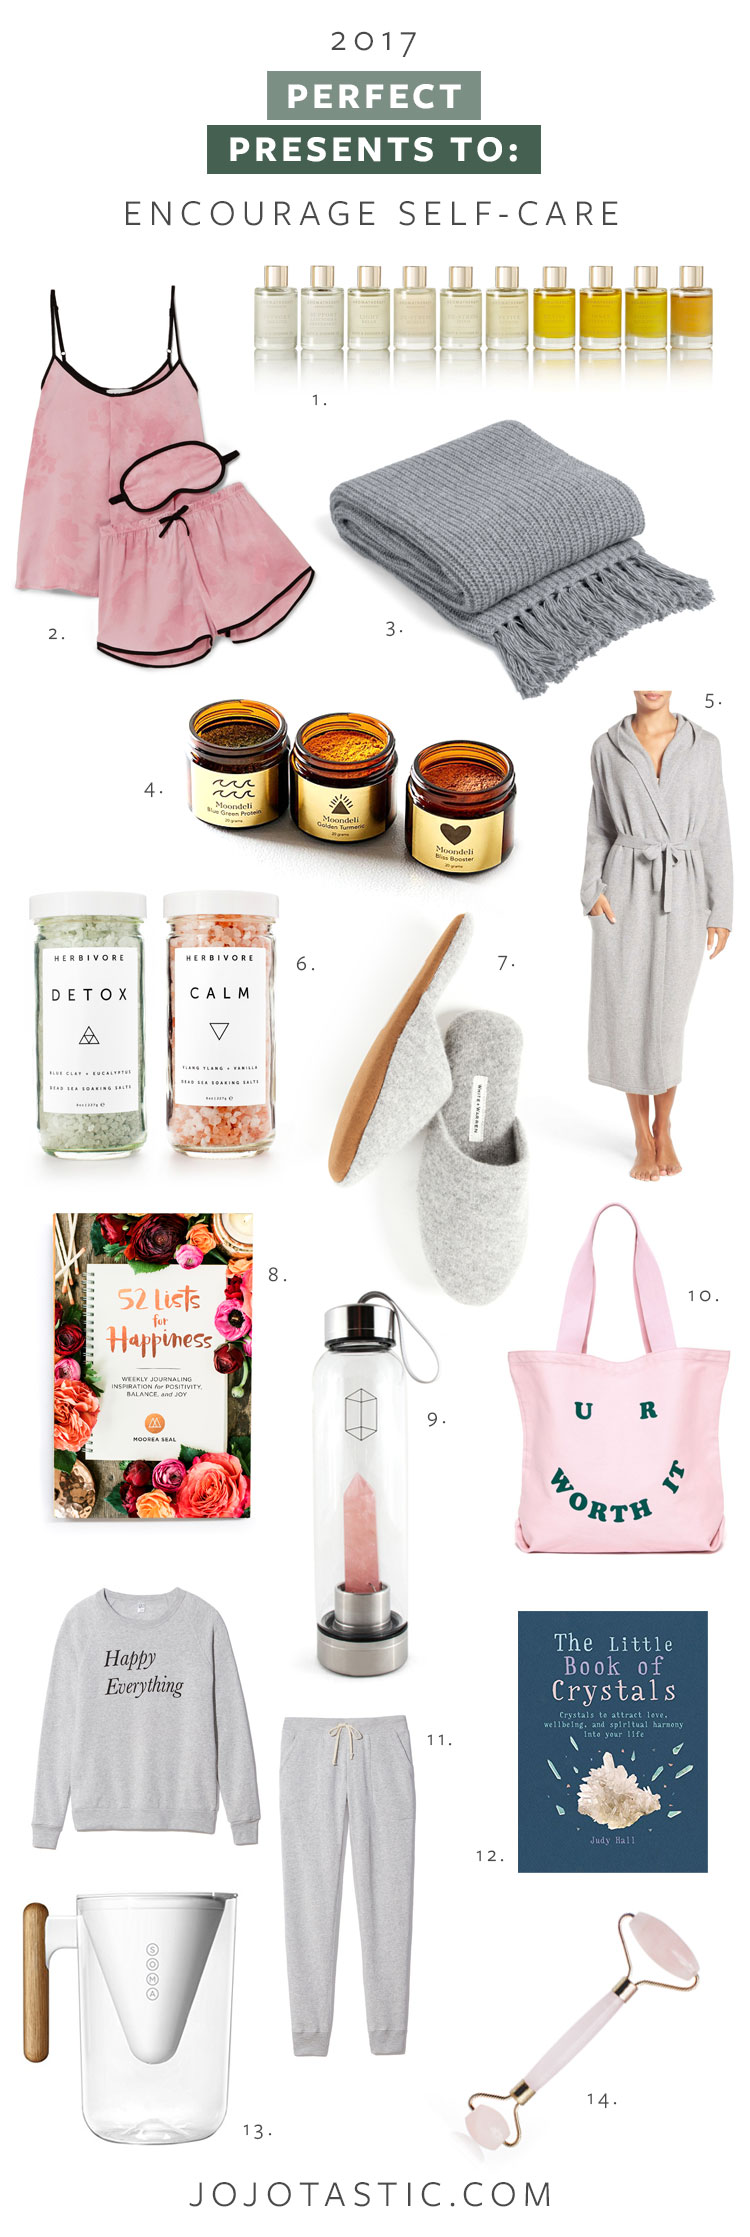 The perfect presents to encourage self-care for that friend who loves essential oils, crystals, and yoga (or needs to!). Get the full gift guide on jojotastic.com #giftguide #holidaygifts #selfcare #christmasgifts